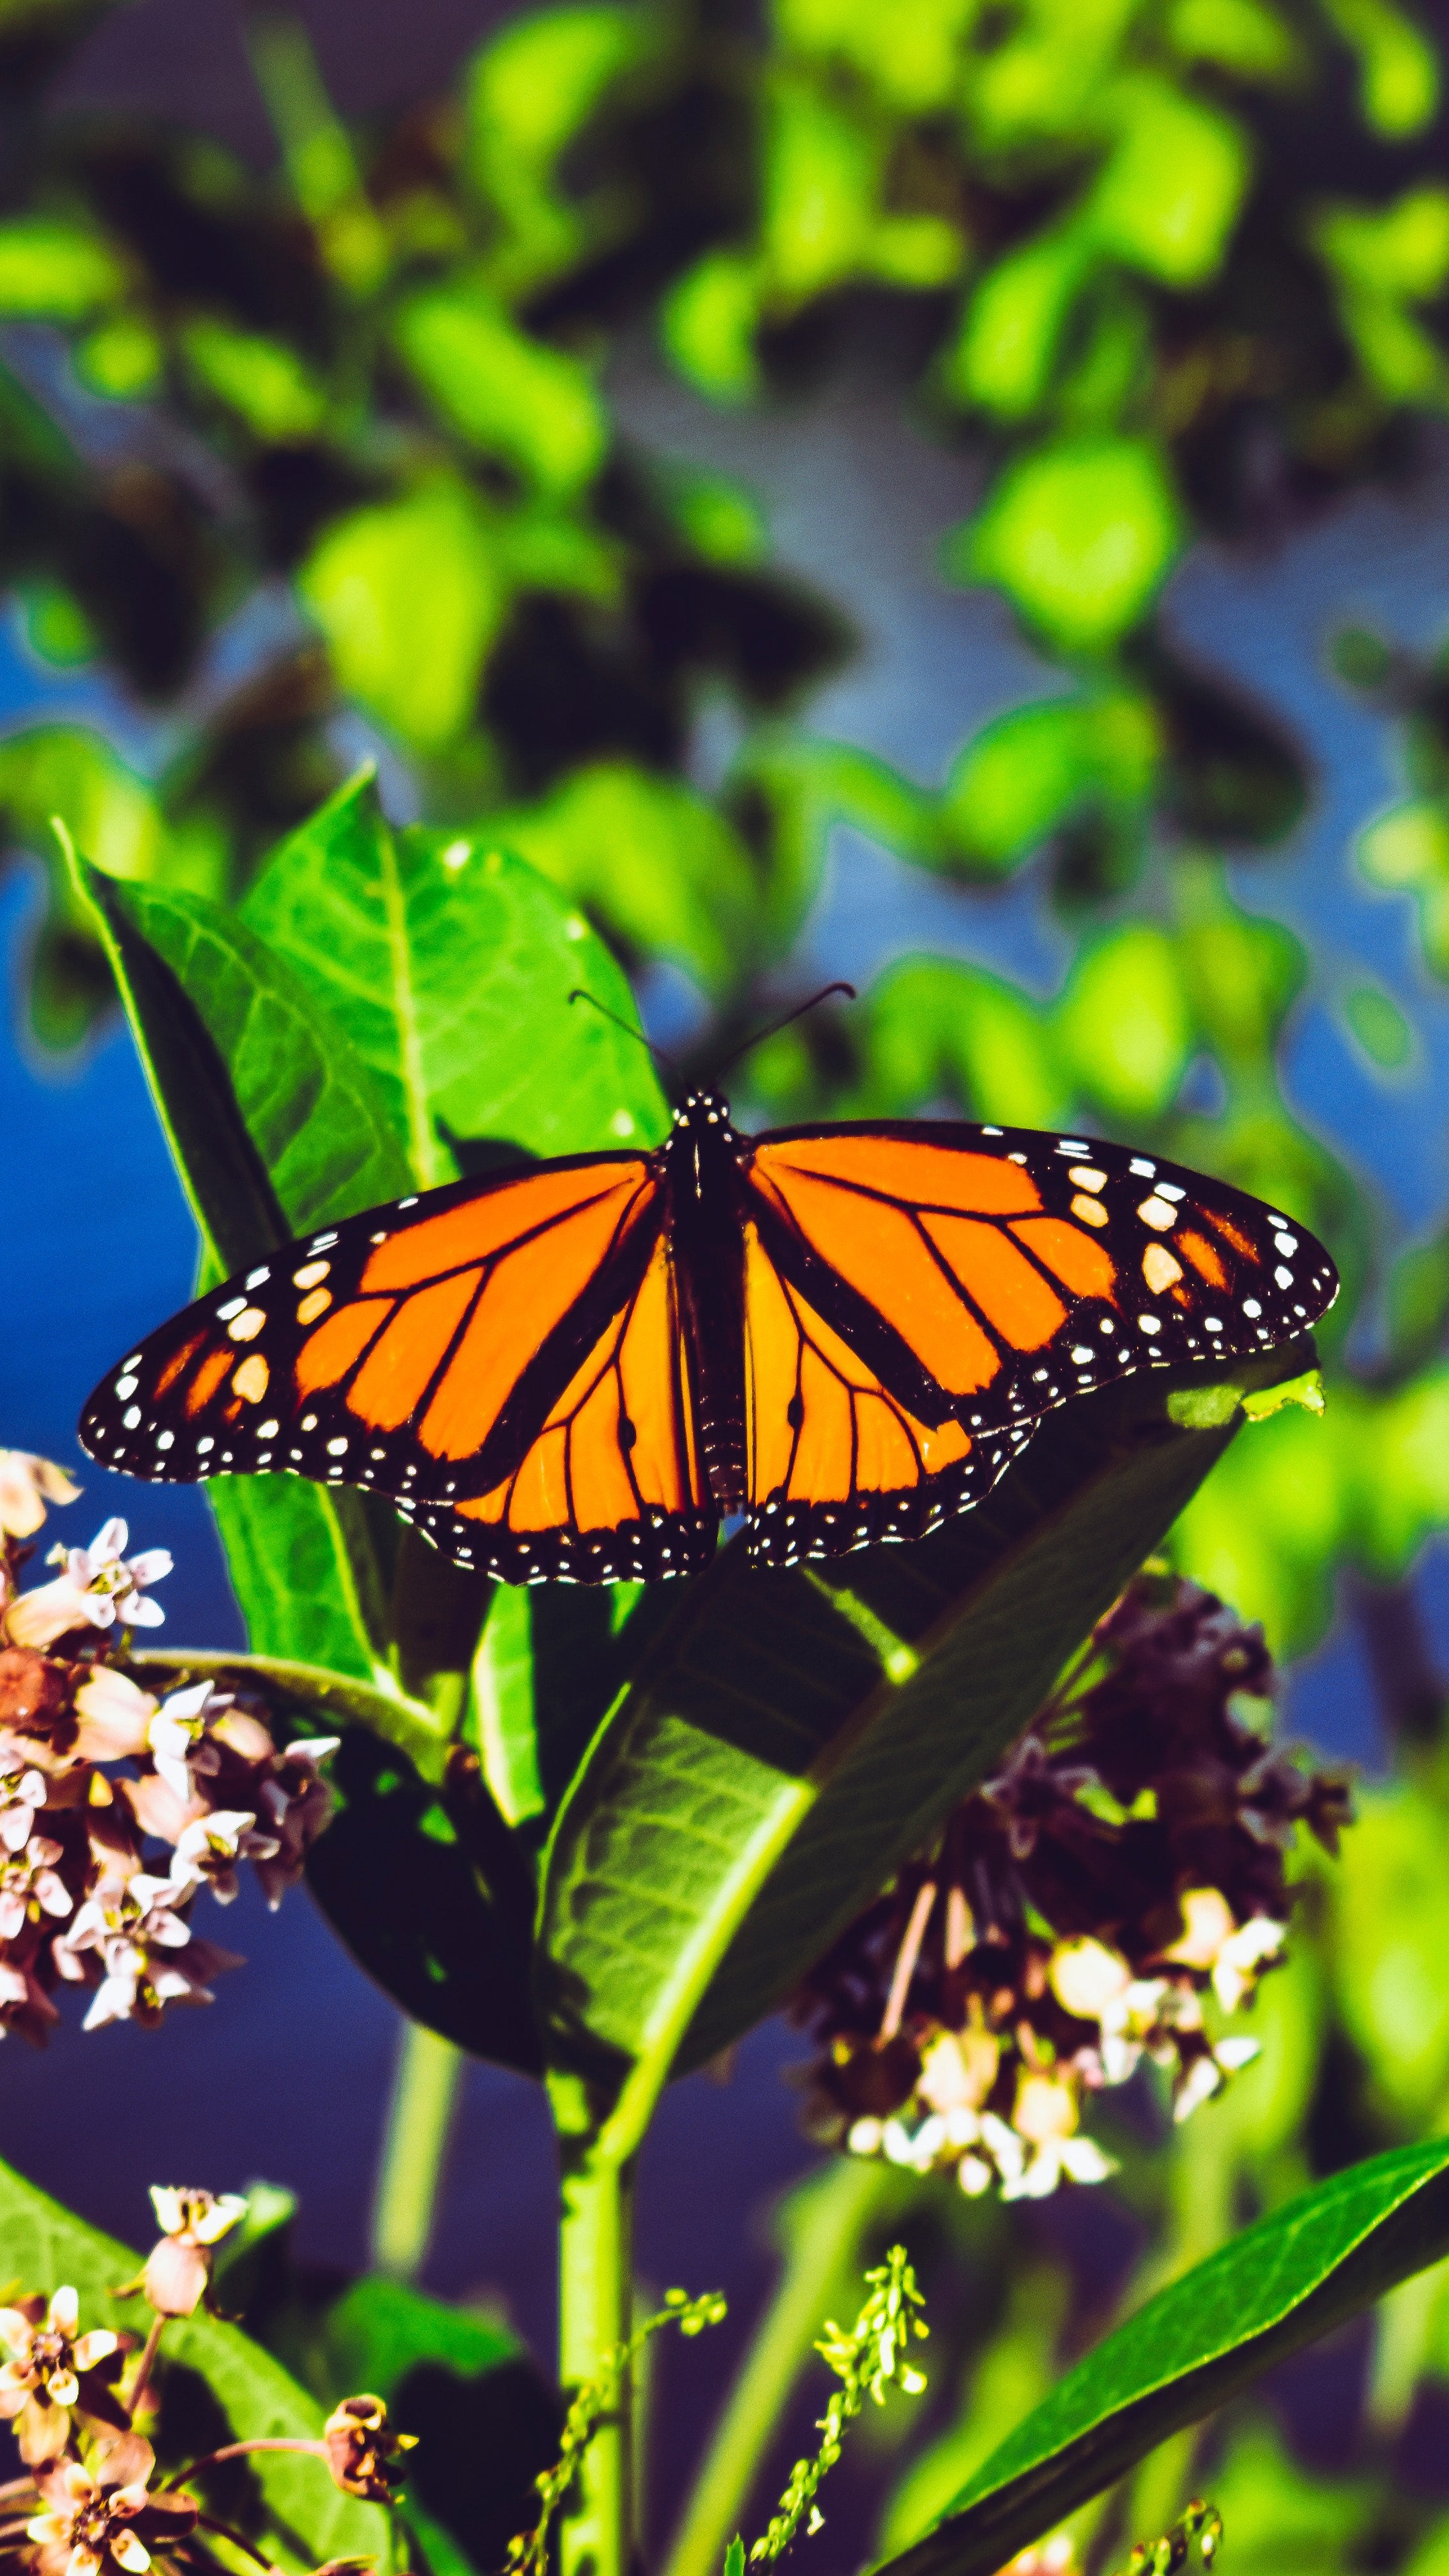 Download wallpaper 2160x3840 monarch butterfly butterfly bright 2160x3840